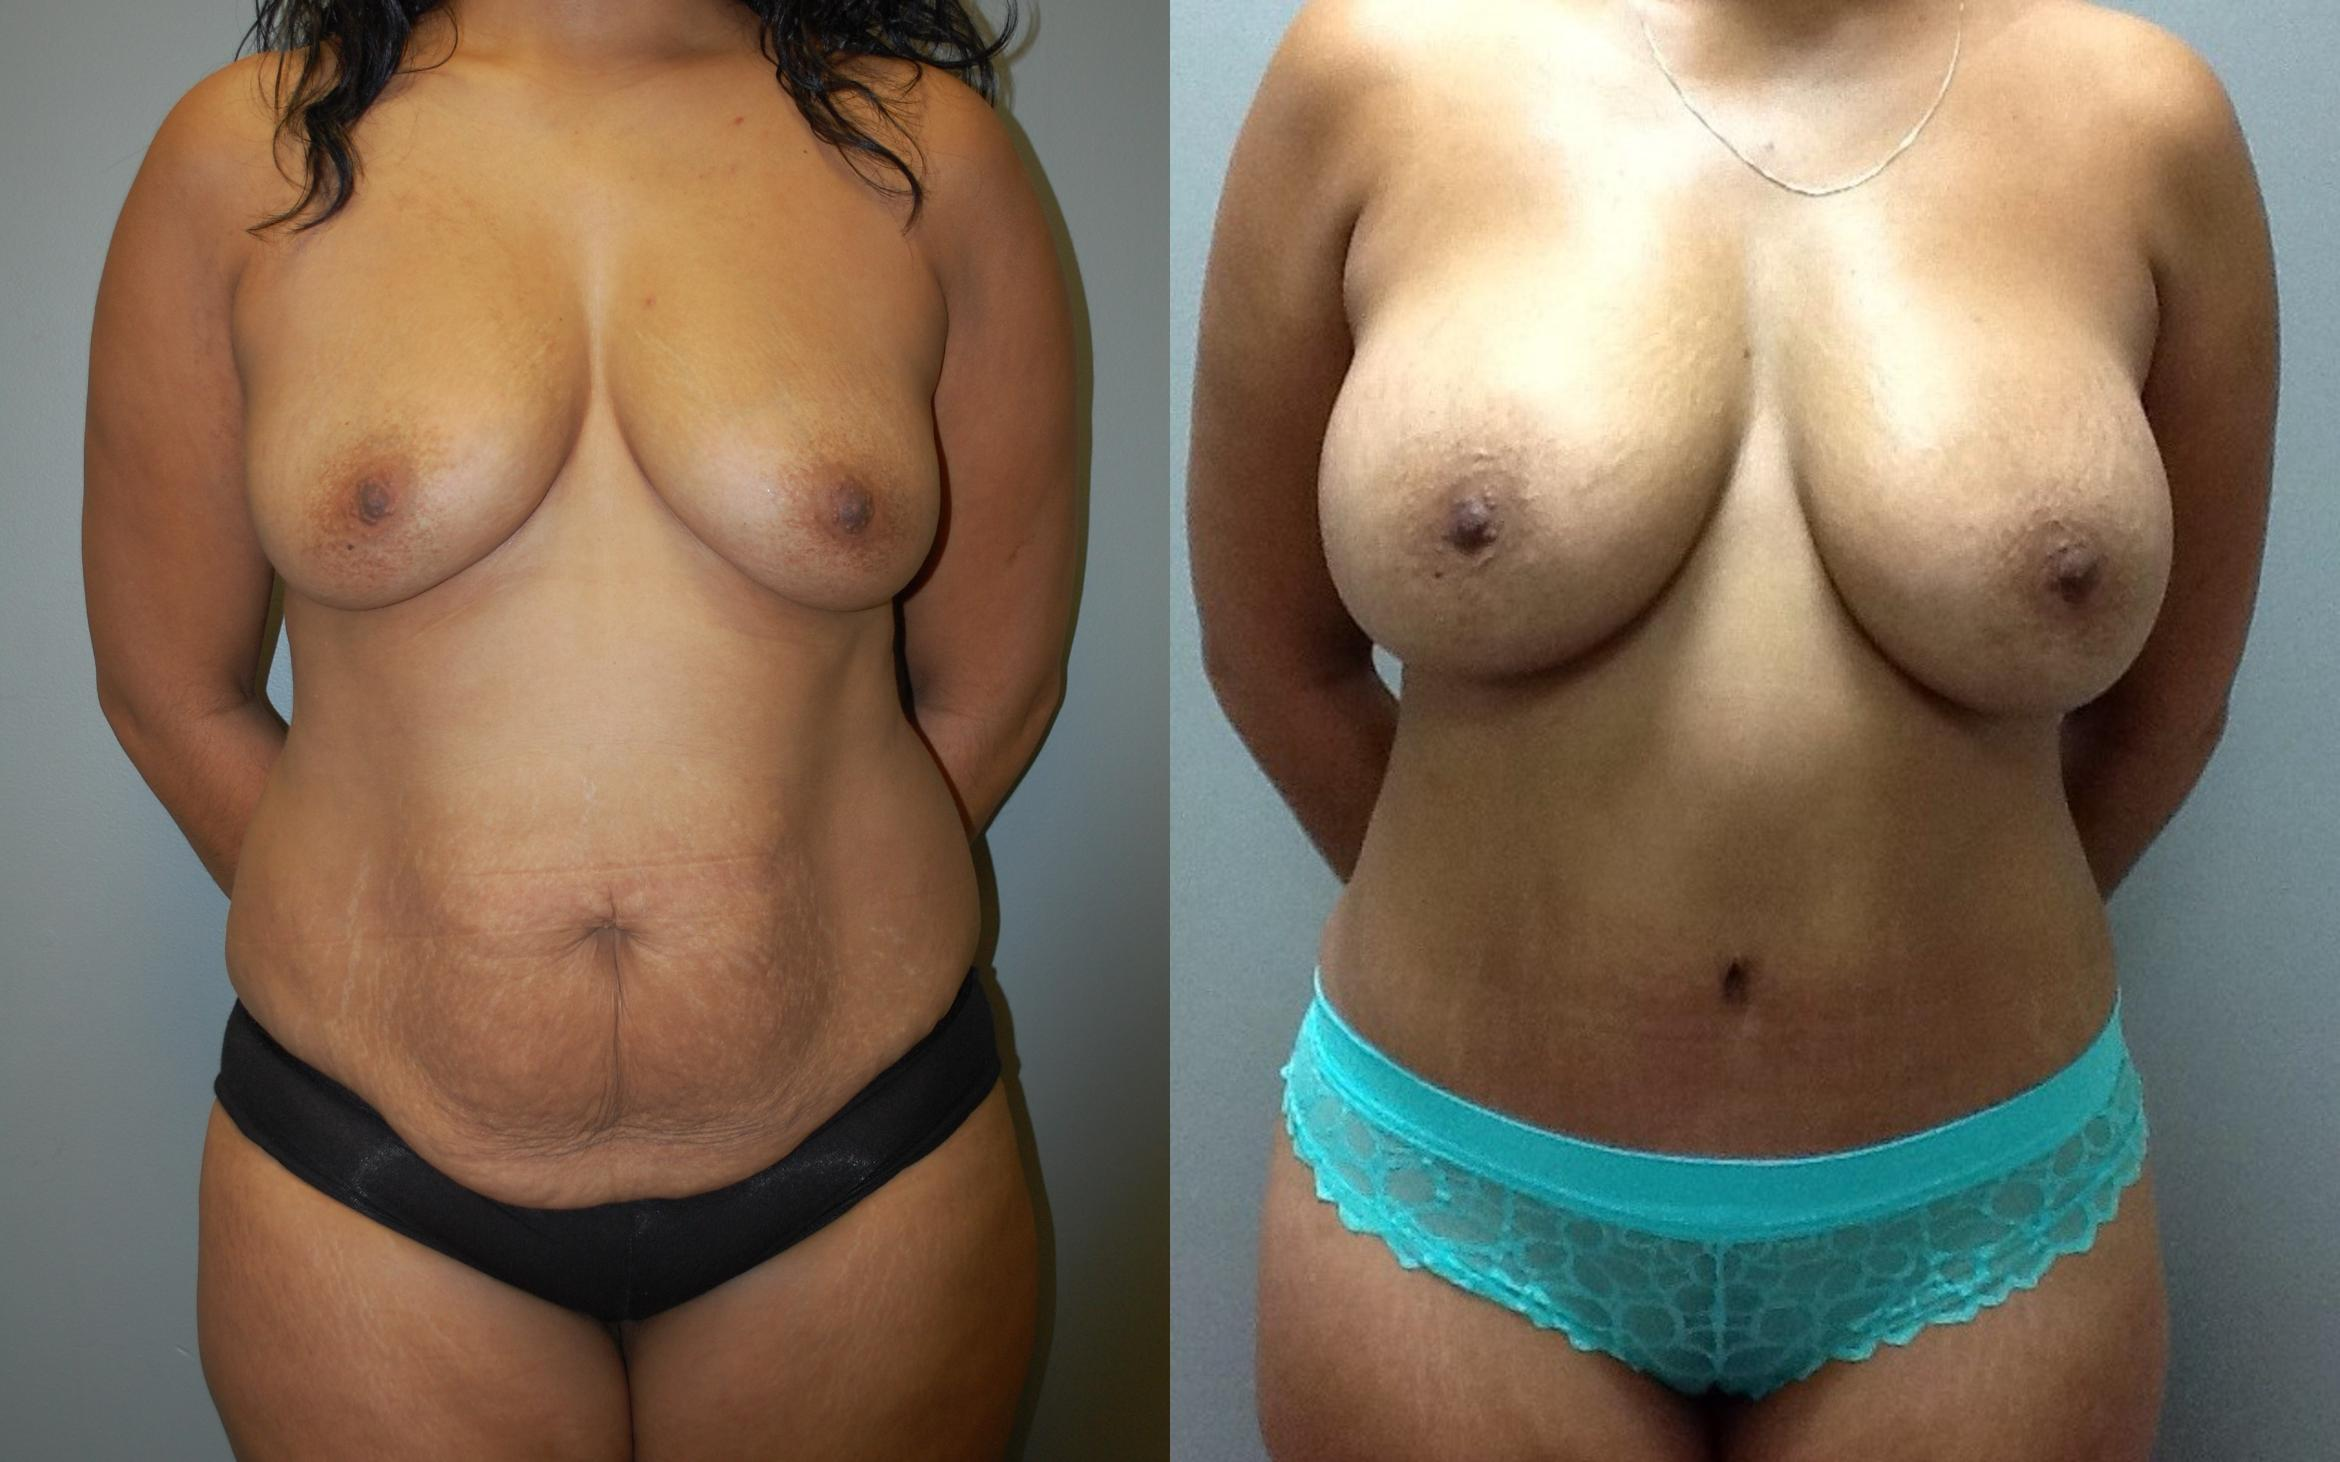 Liposuction Before & After Photo | Springfield, MA | Aesthetic Plastic & Reconstructive Surgery